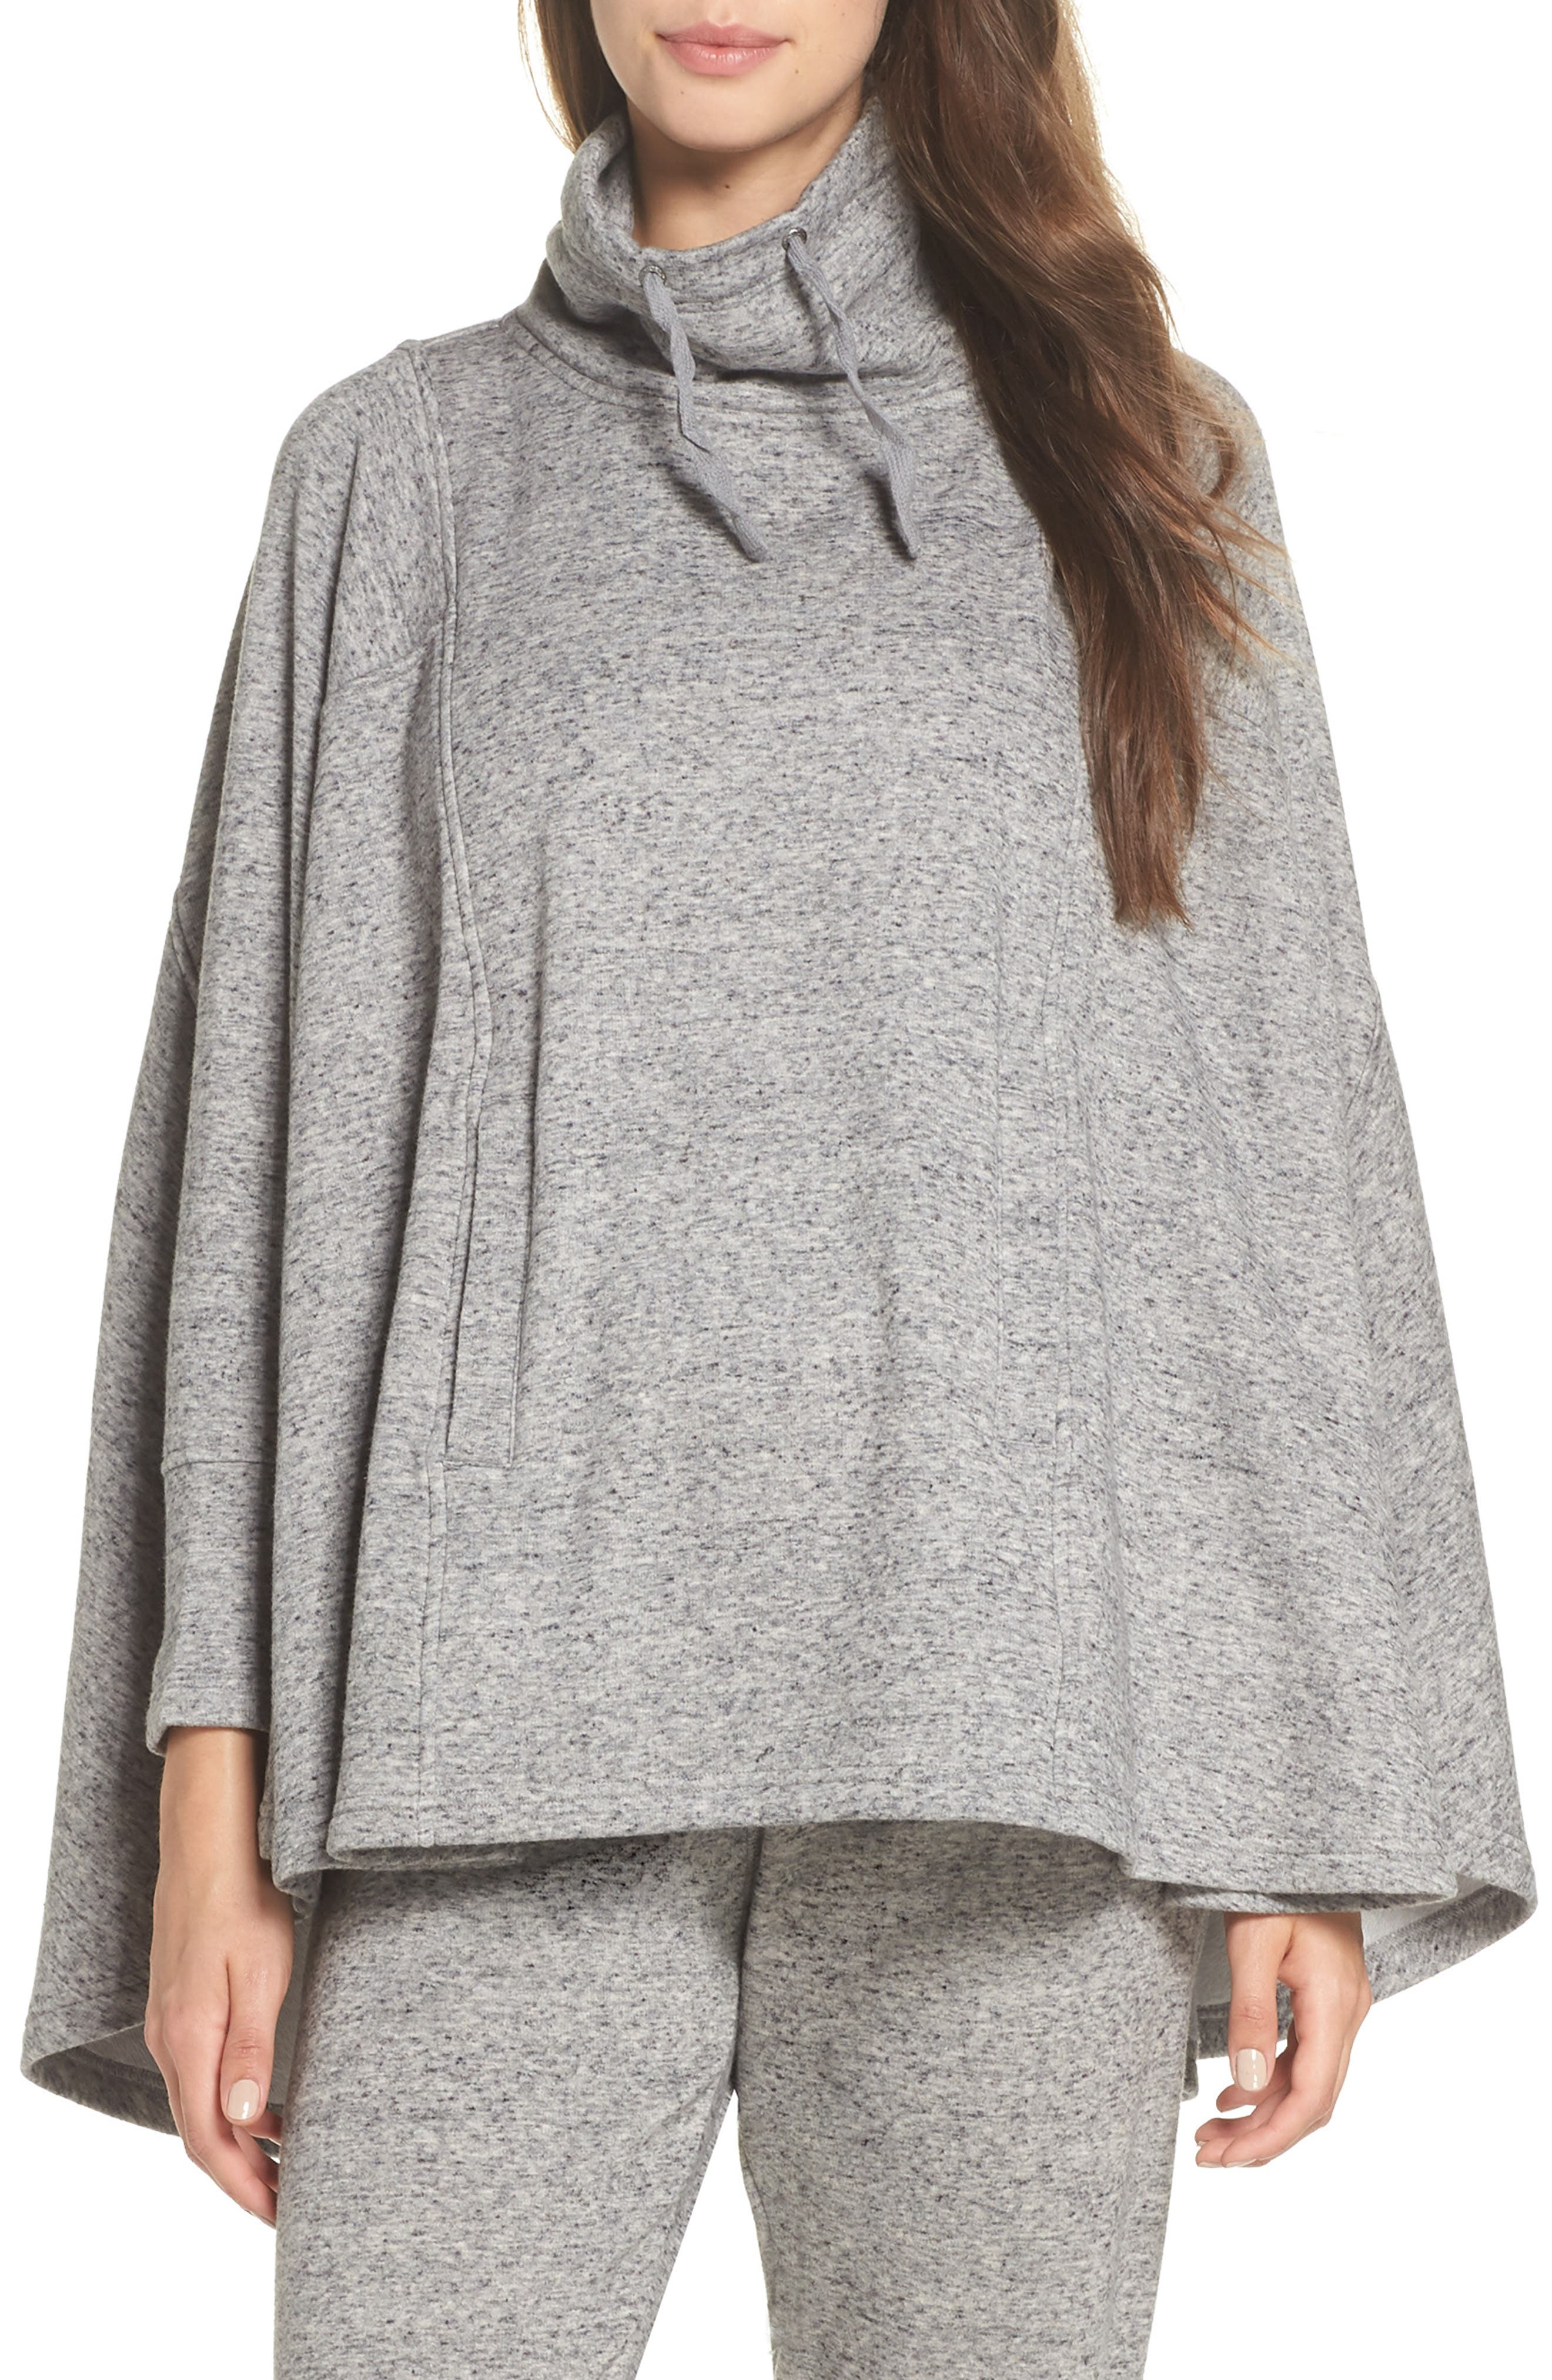 Pichot Turtleneck Poncho,                             Main thumbnail 1, color,                             GREY HEATHER